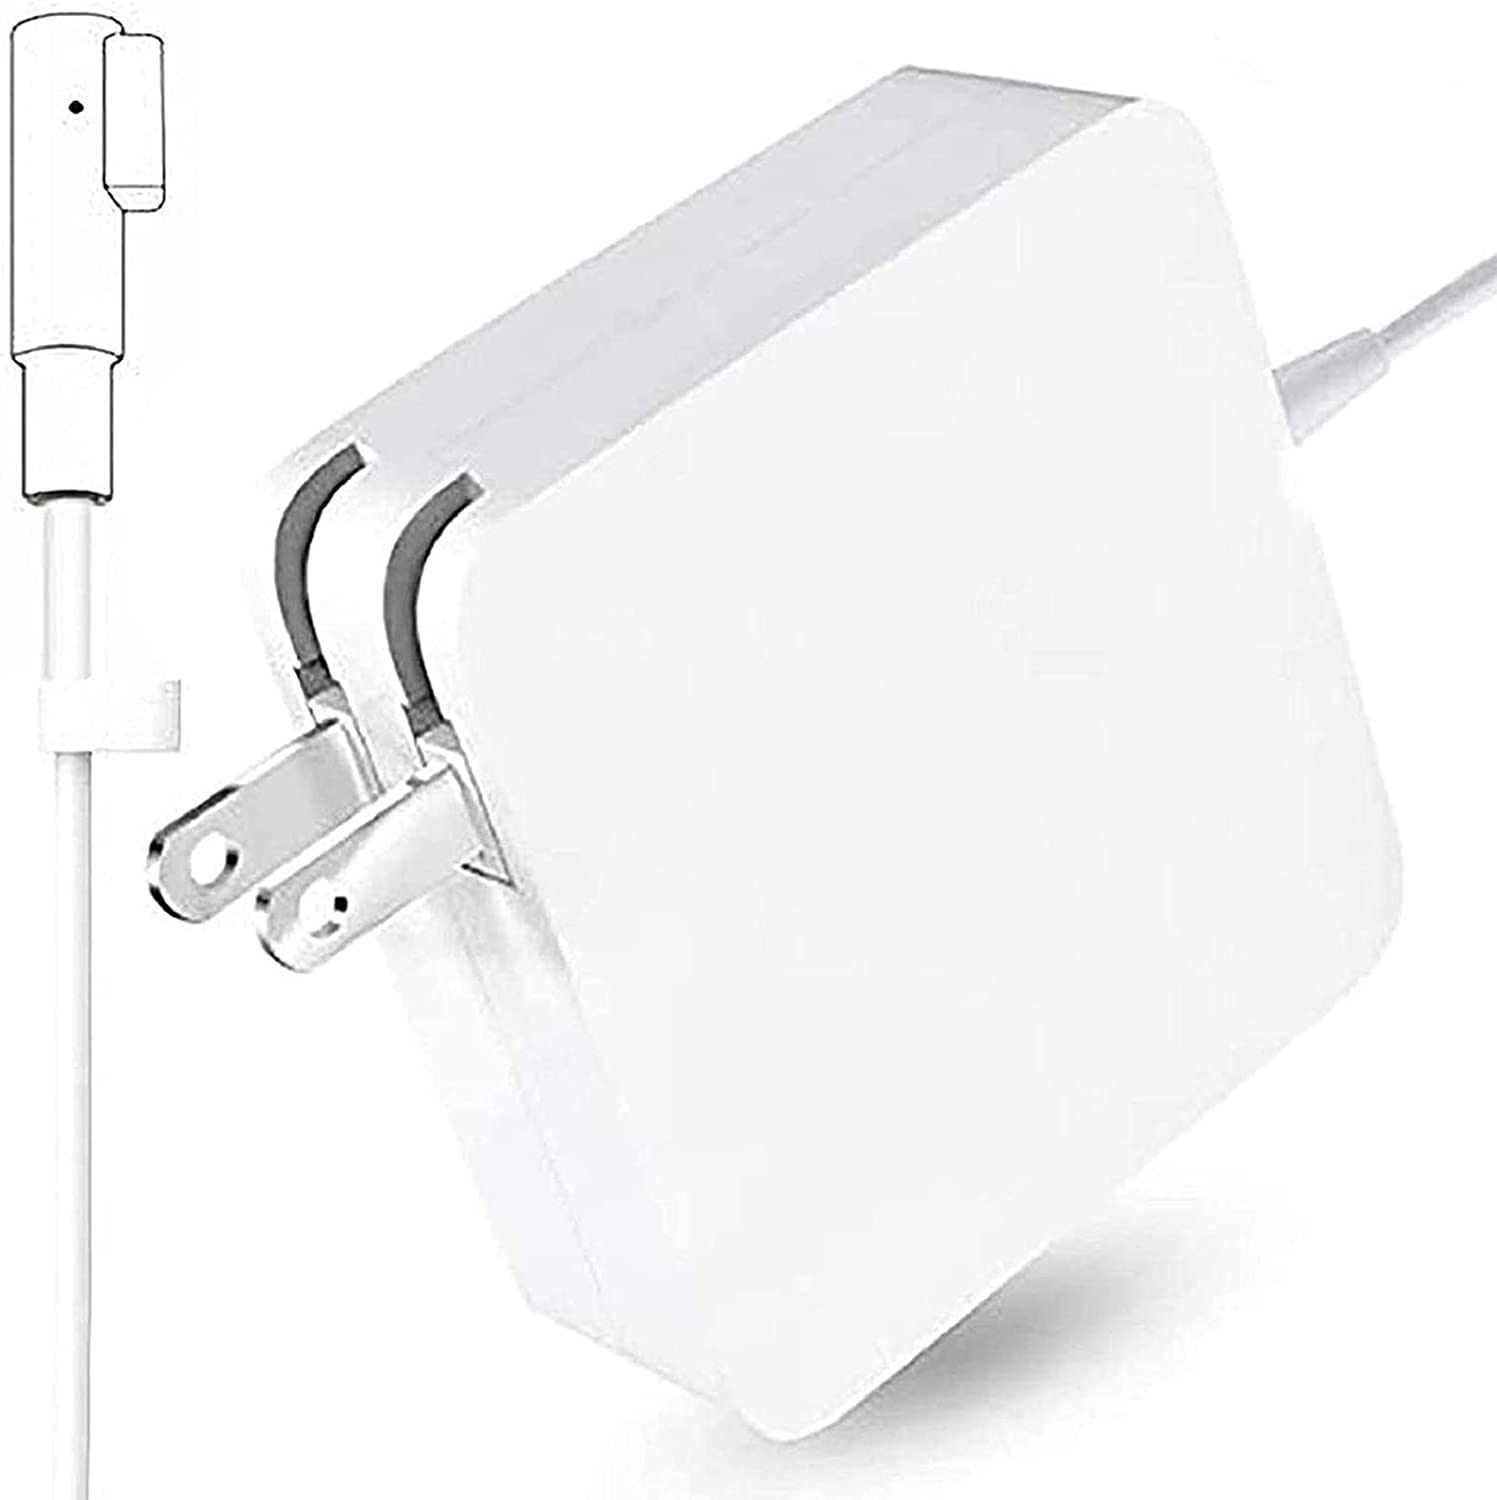 Mac Book Pro Charger Replacement 85W L-Tip Power Adapter Magnetic Compatible for Mac Book Pro 15-Inch and 17-inch Laptop